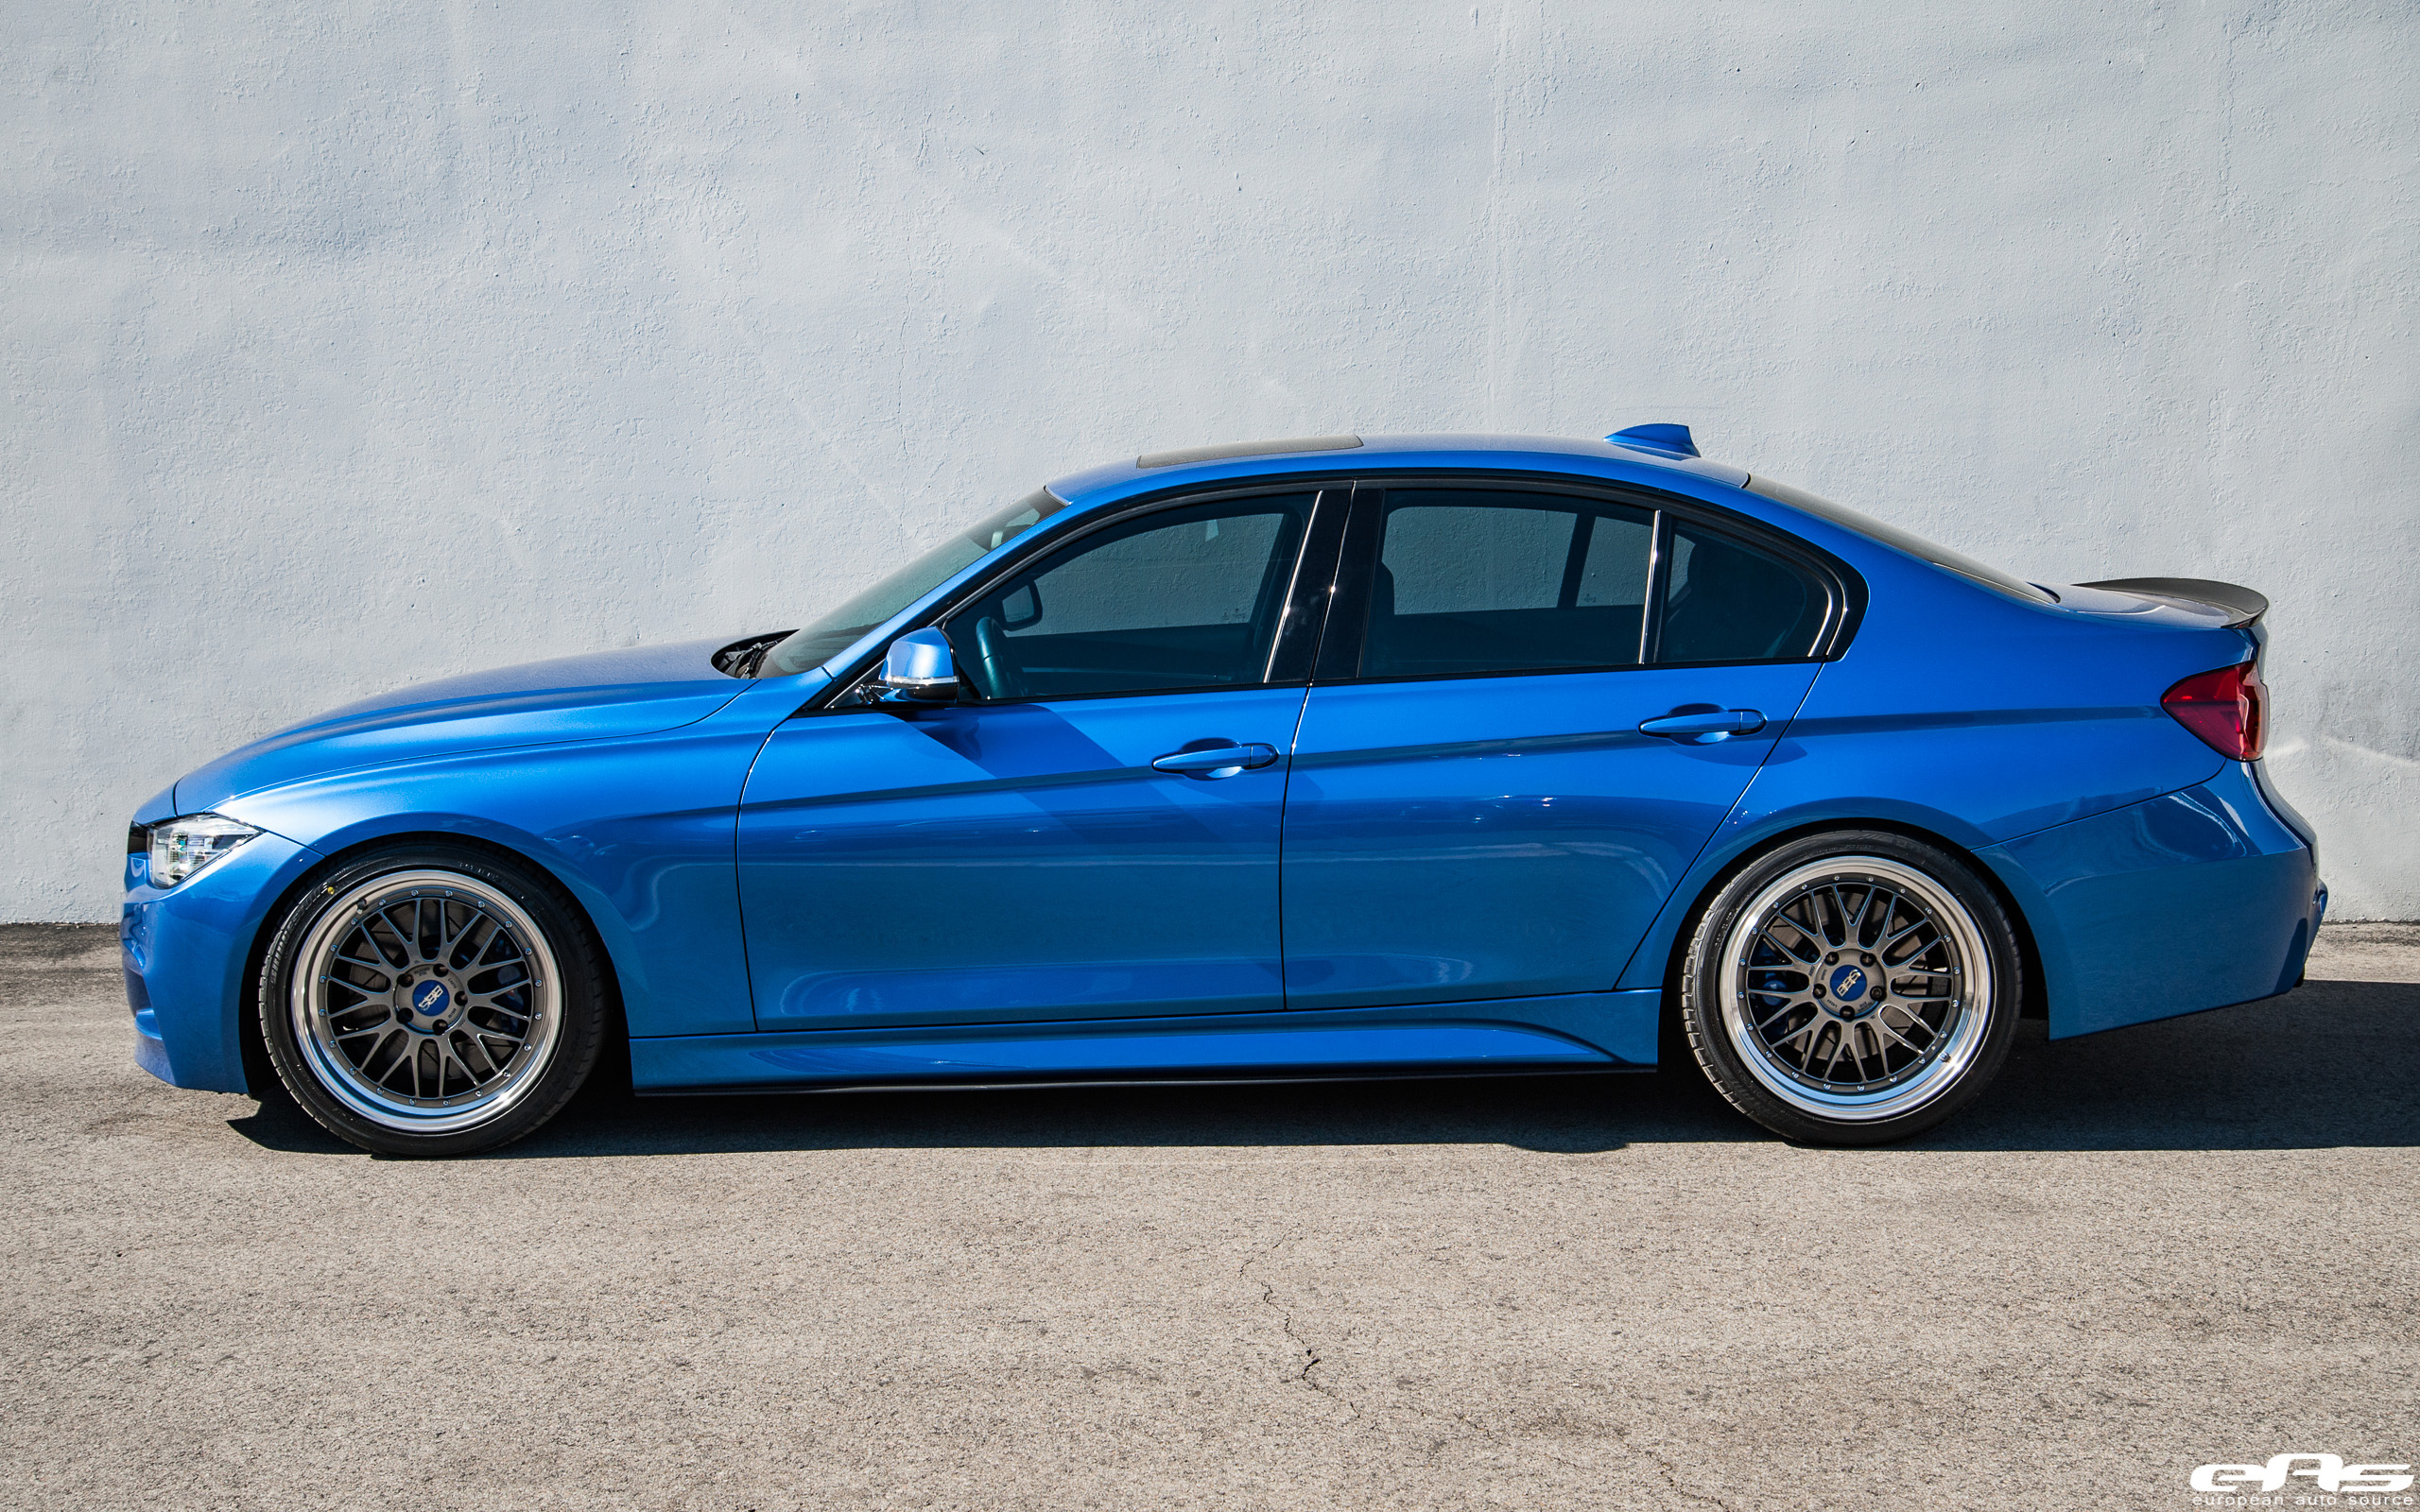 Build A Bmw >> Estoril Blue Metallic BMW 340i With BBS Wheels and M Performance Parts